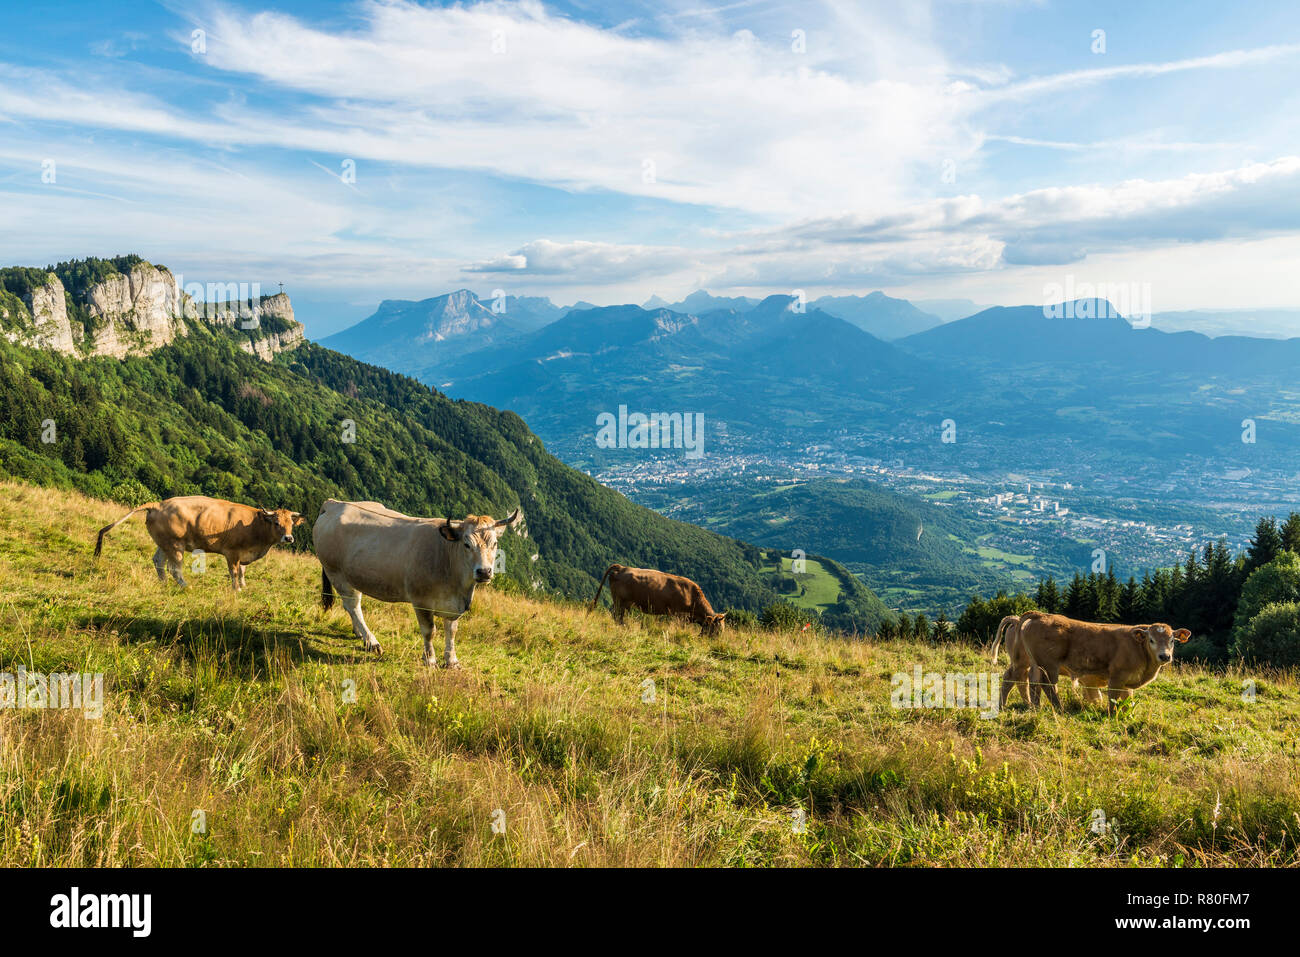 Herd of Tarentaise cows in a field on the site of Le-Sire, near the ski resort of La Feclaz, in the heart of the Bauges Massif Regional Nature Park. - Stock Image